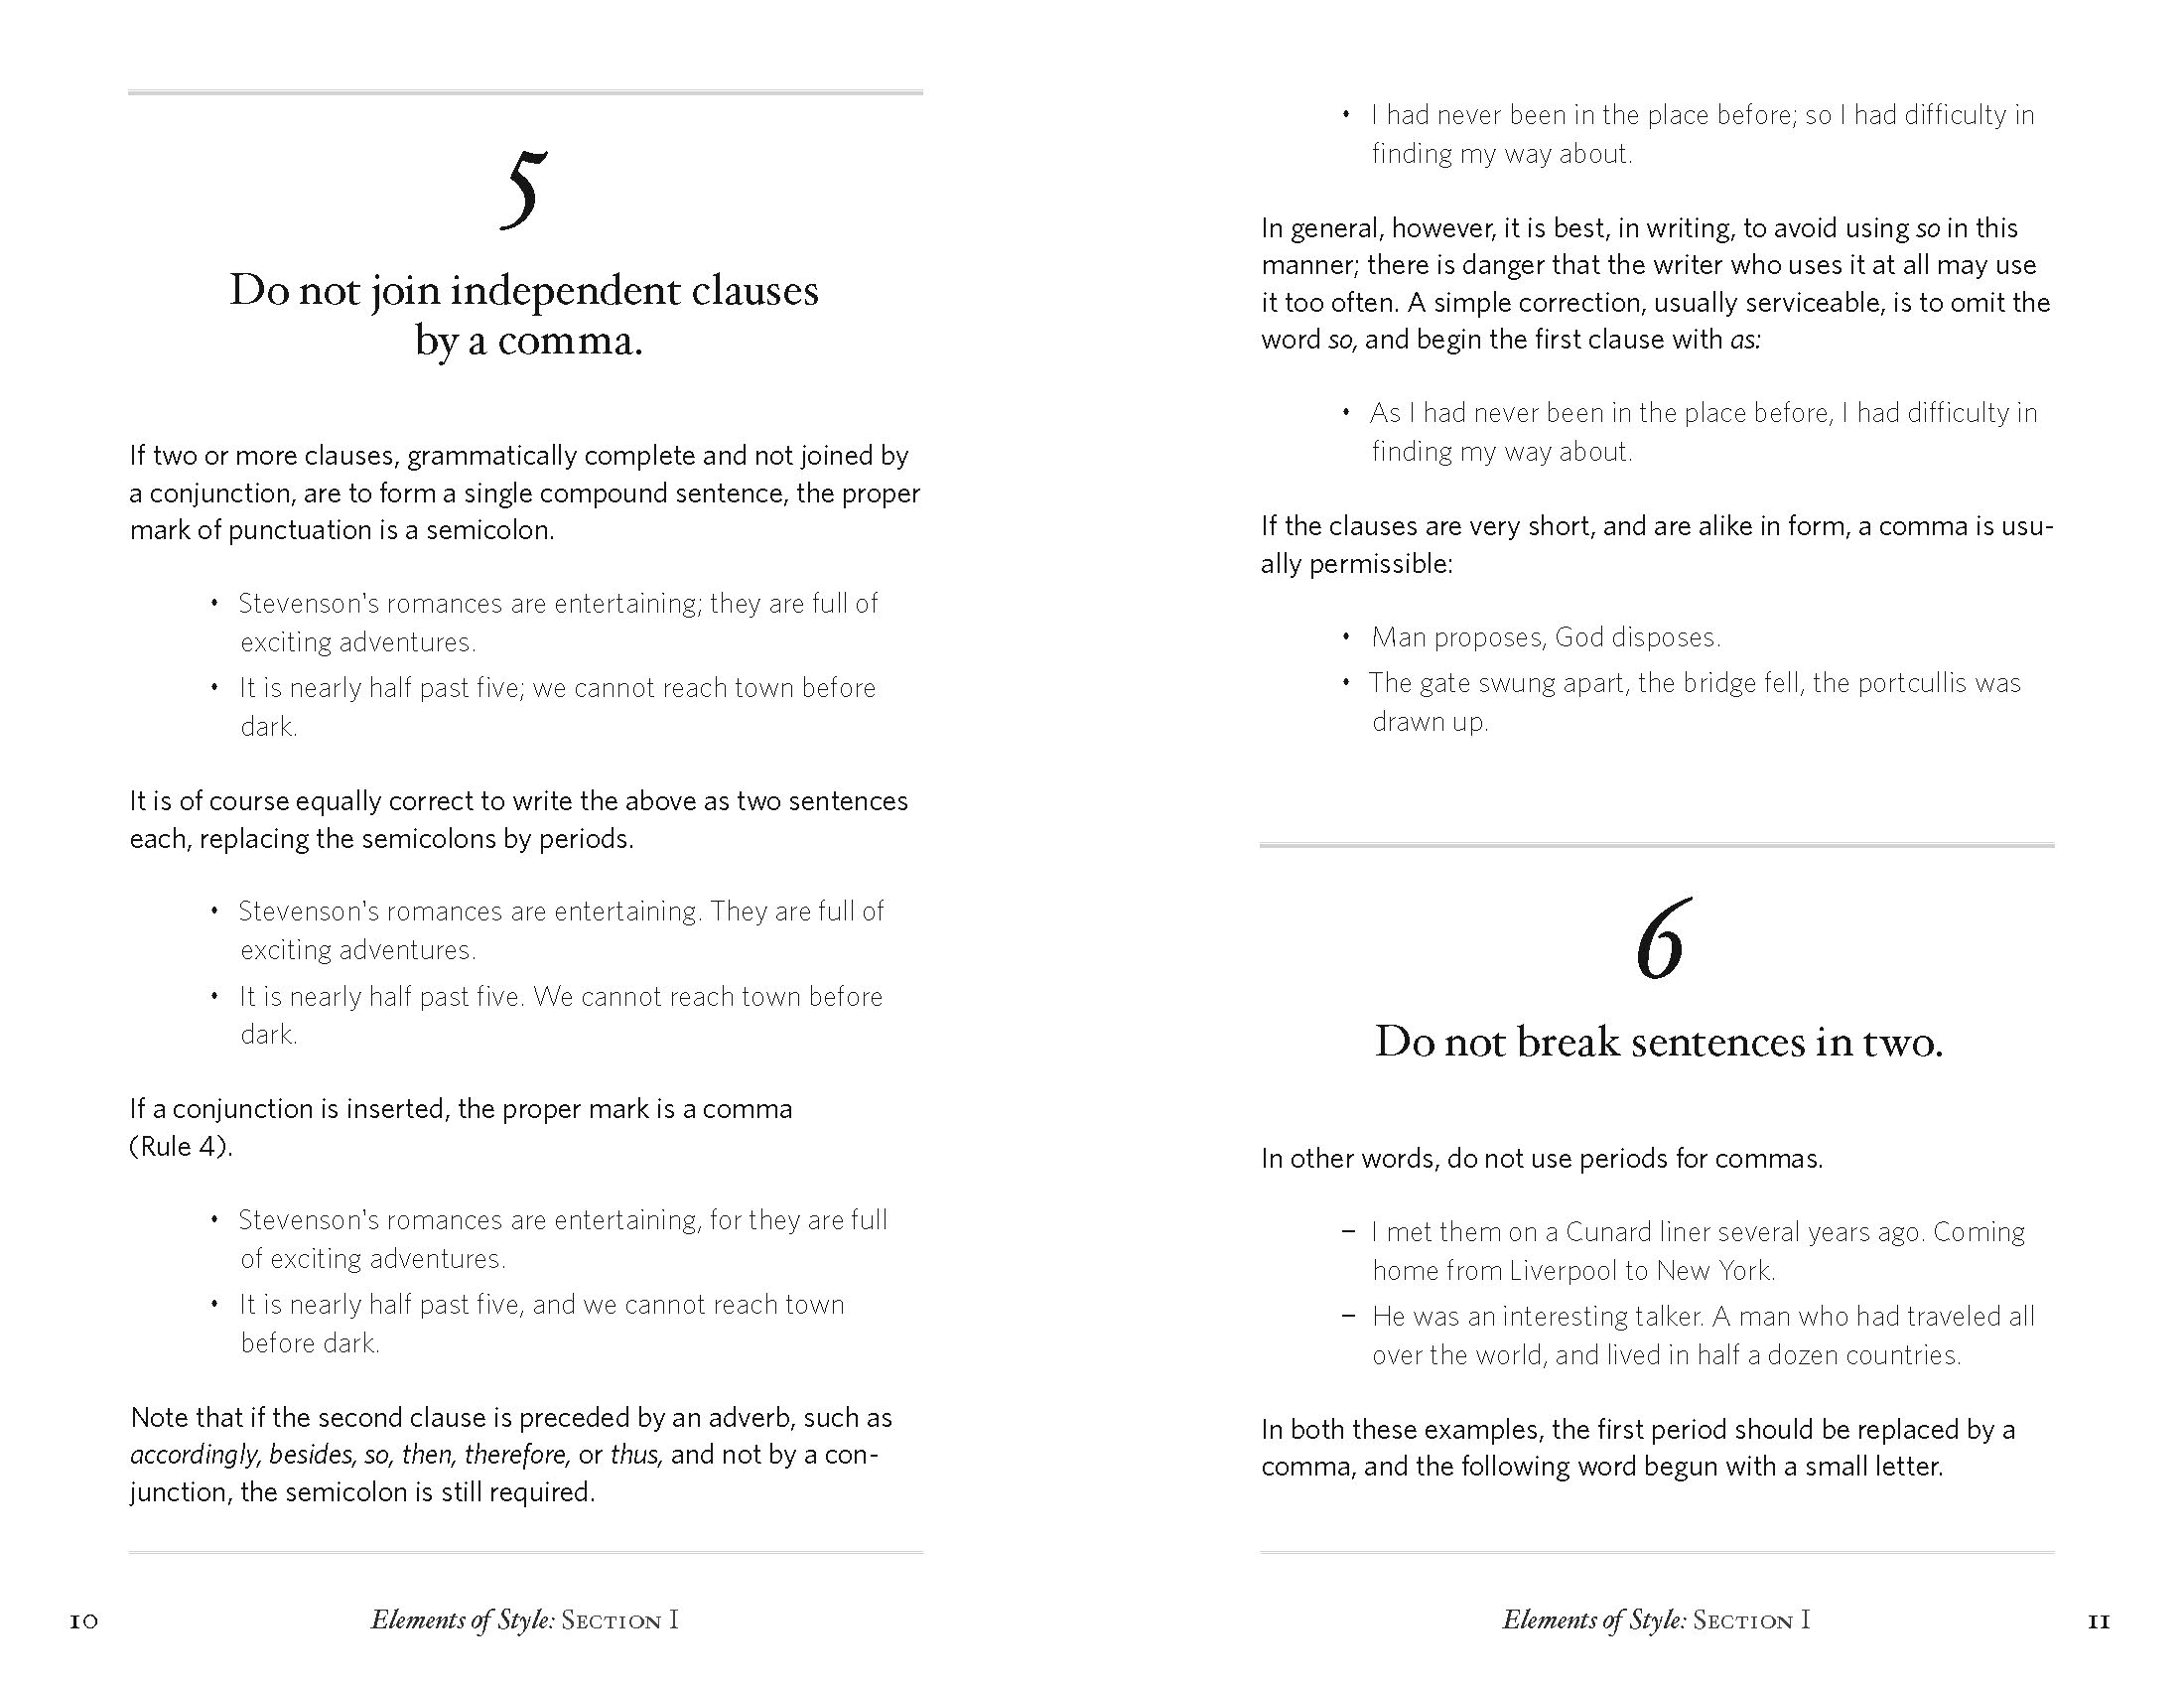 elements_of_style_section_1_v5_Page_07.jpg